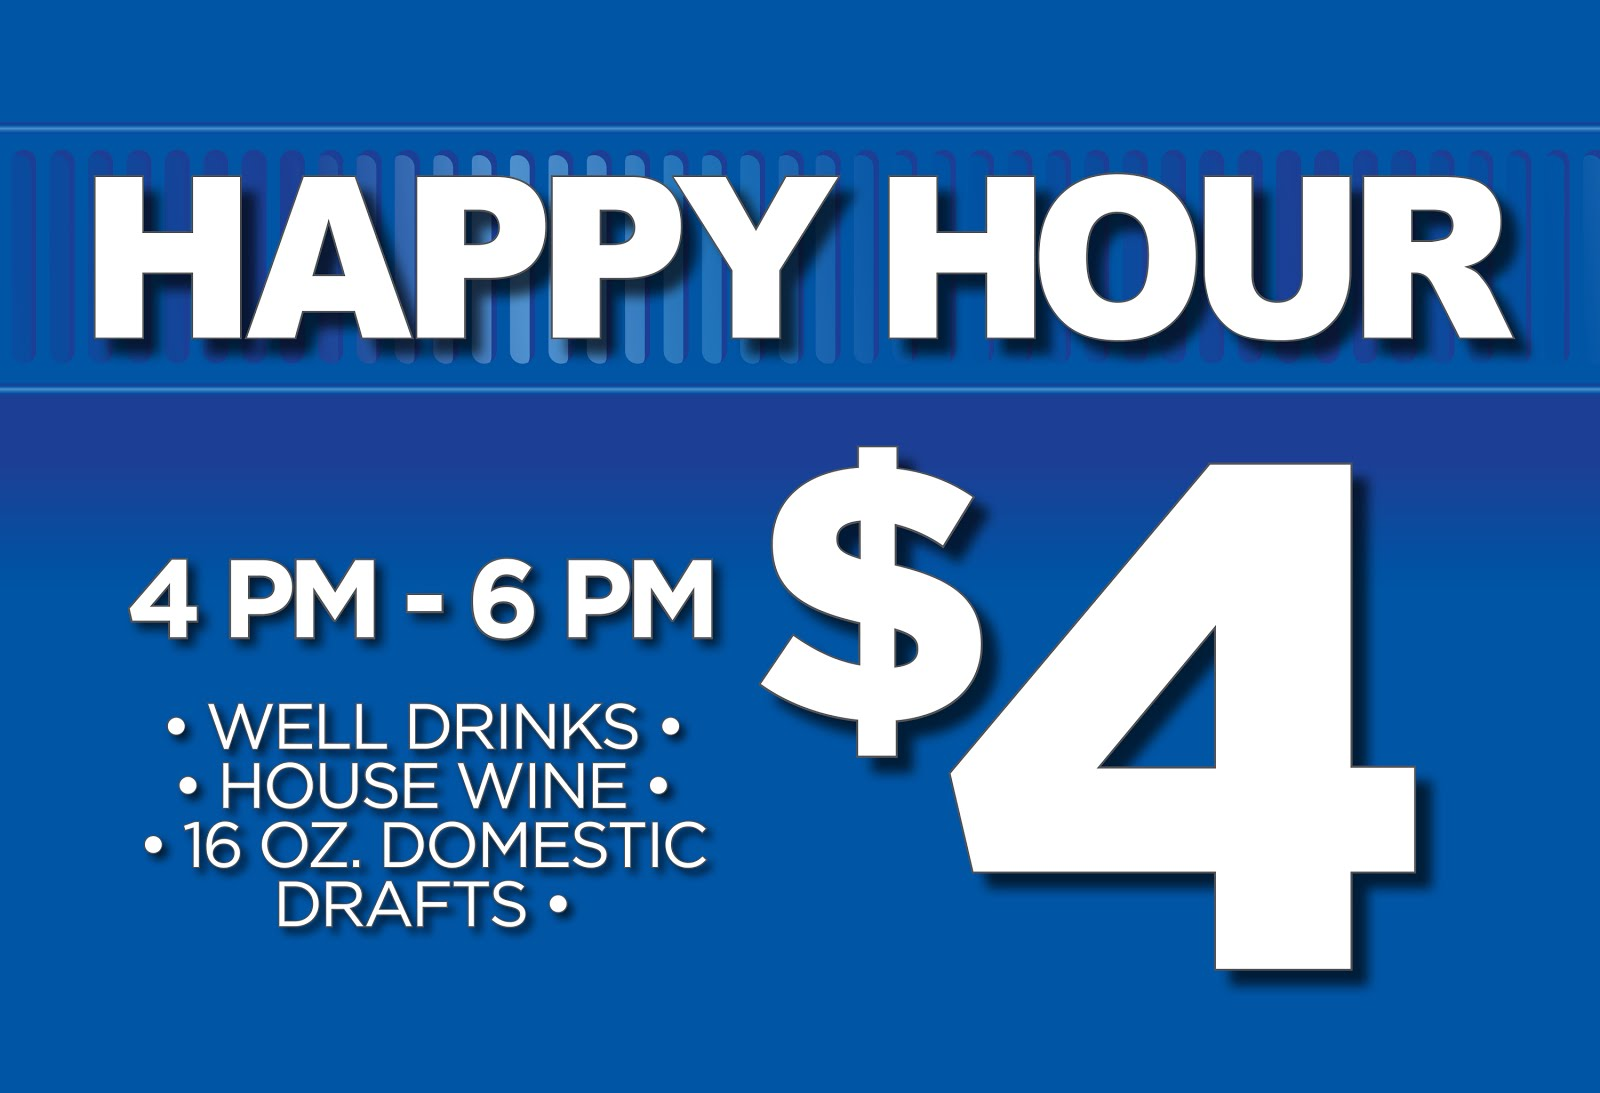 Enjoy Happy Hour!!